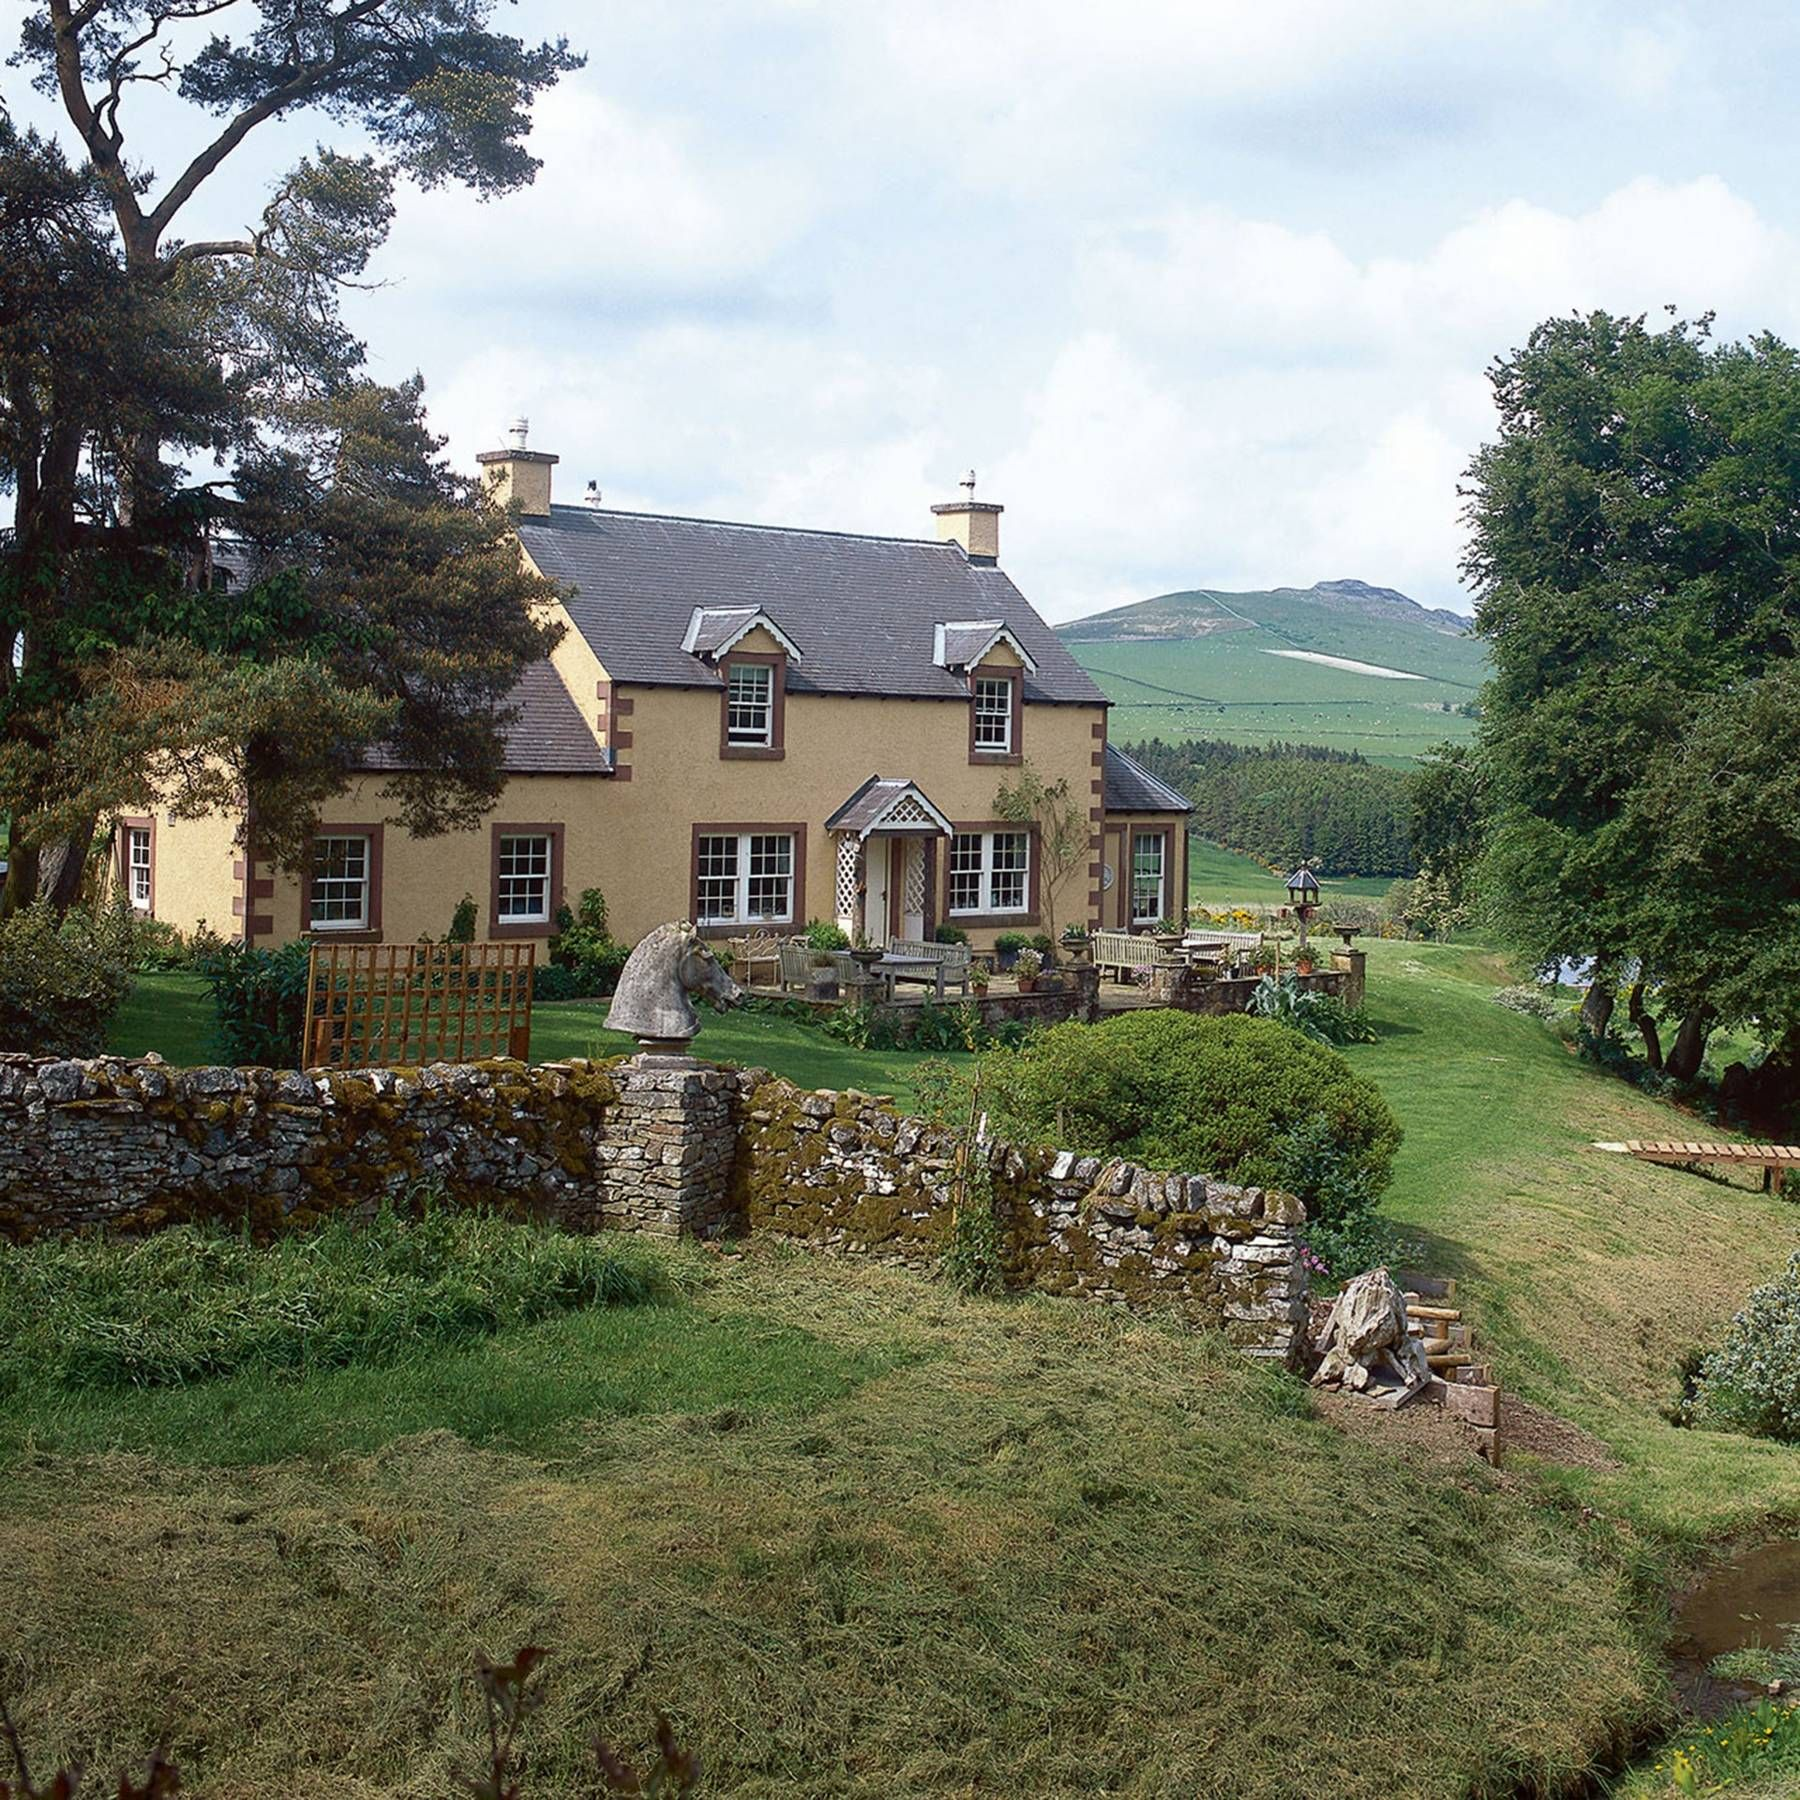 An artist's house in the Scottish borders in 2020 Artist